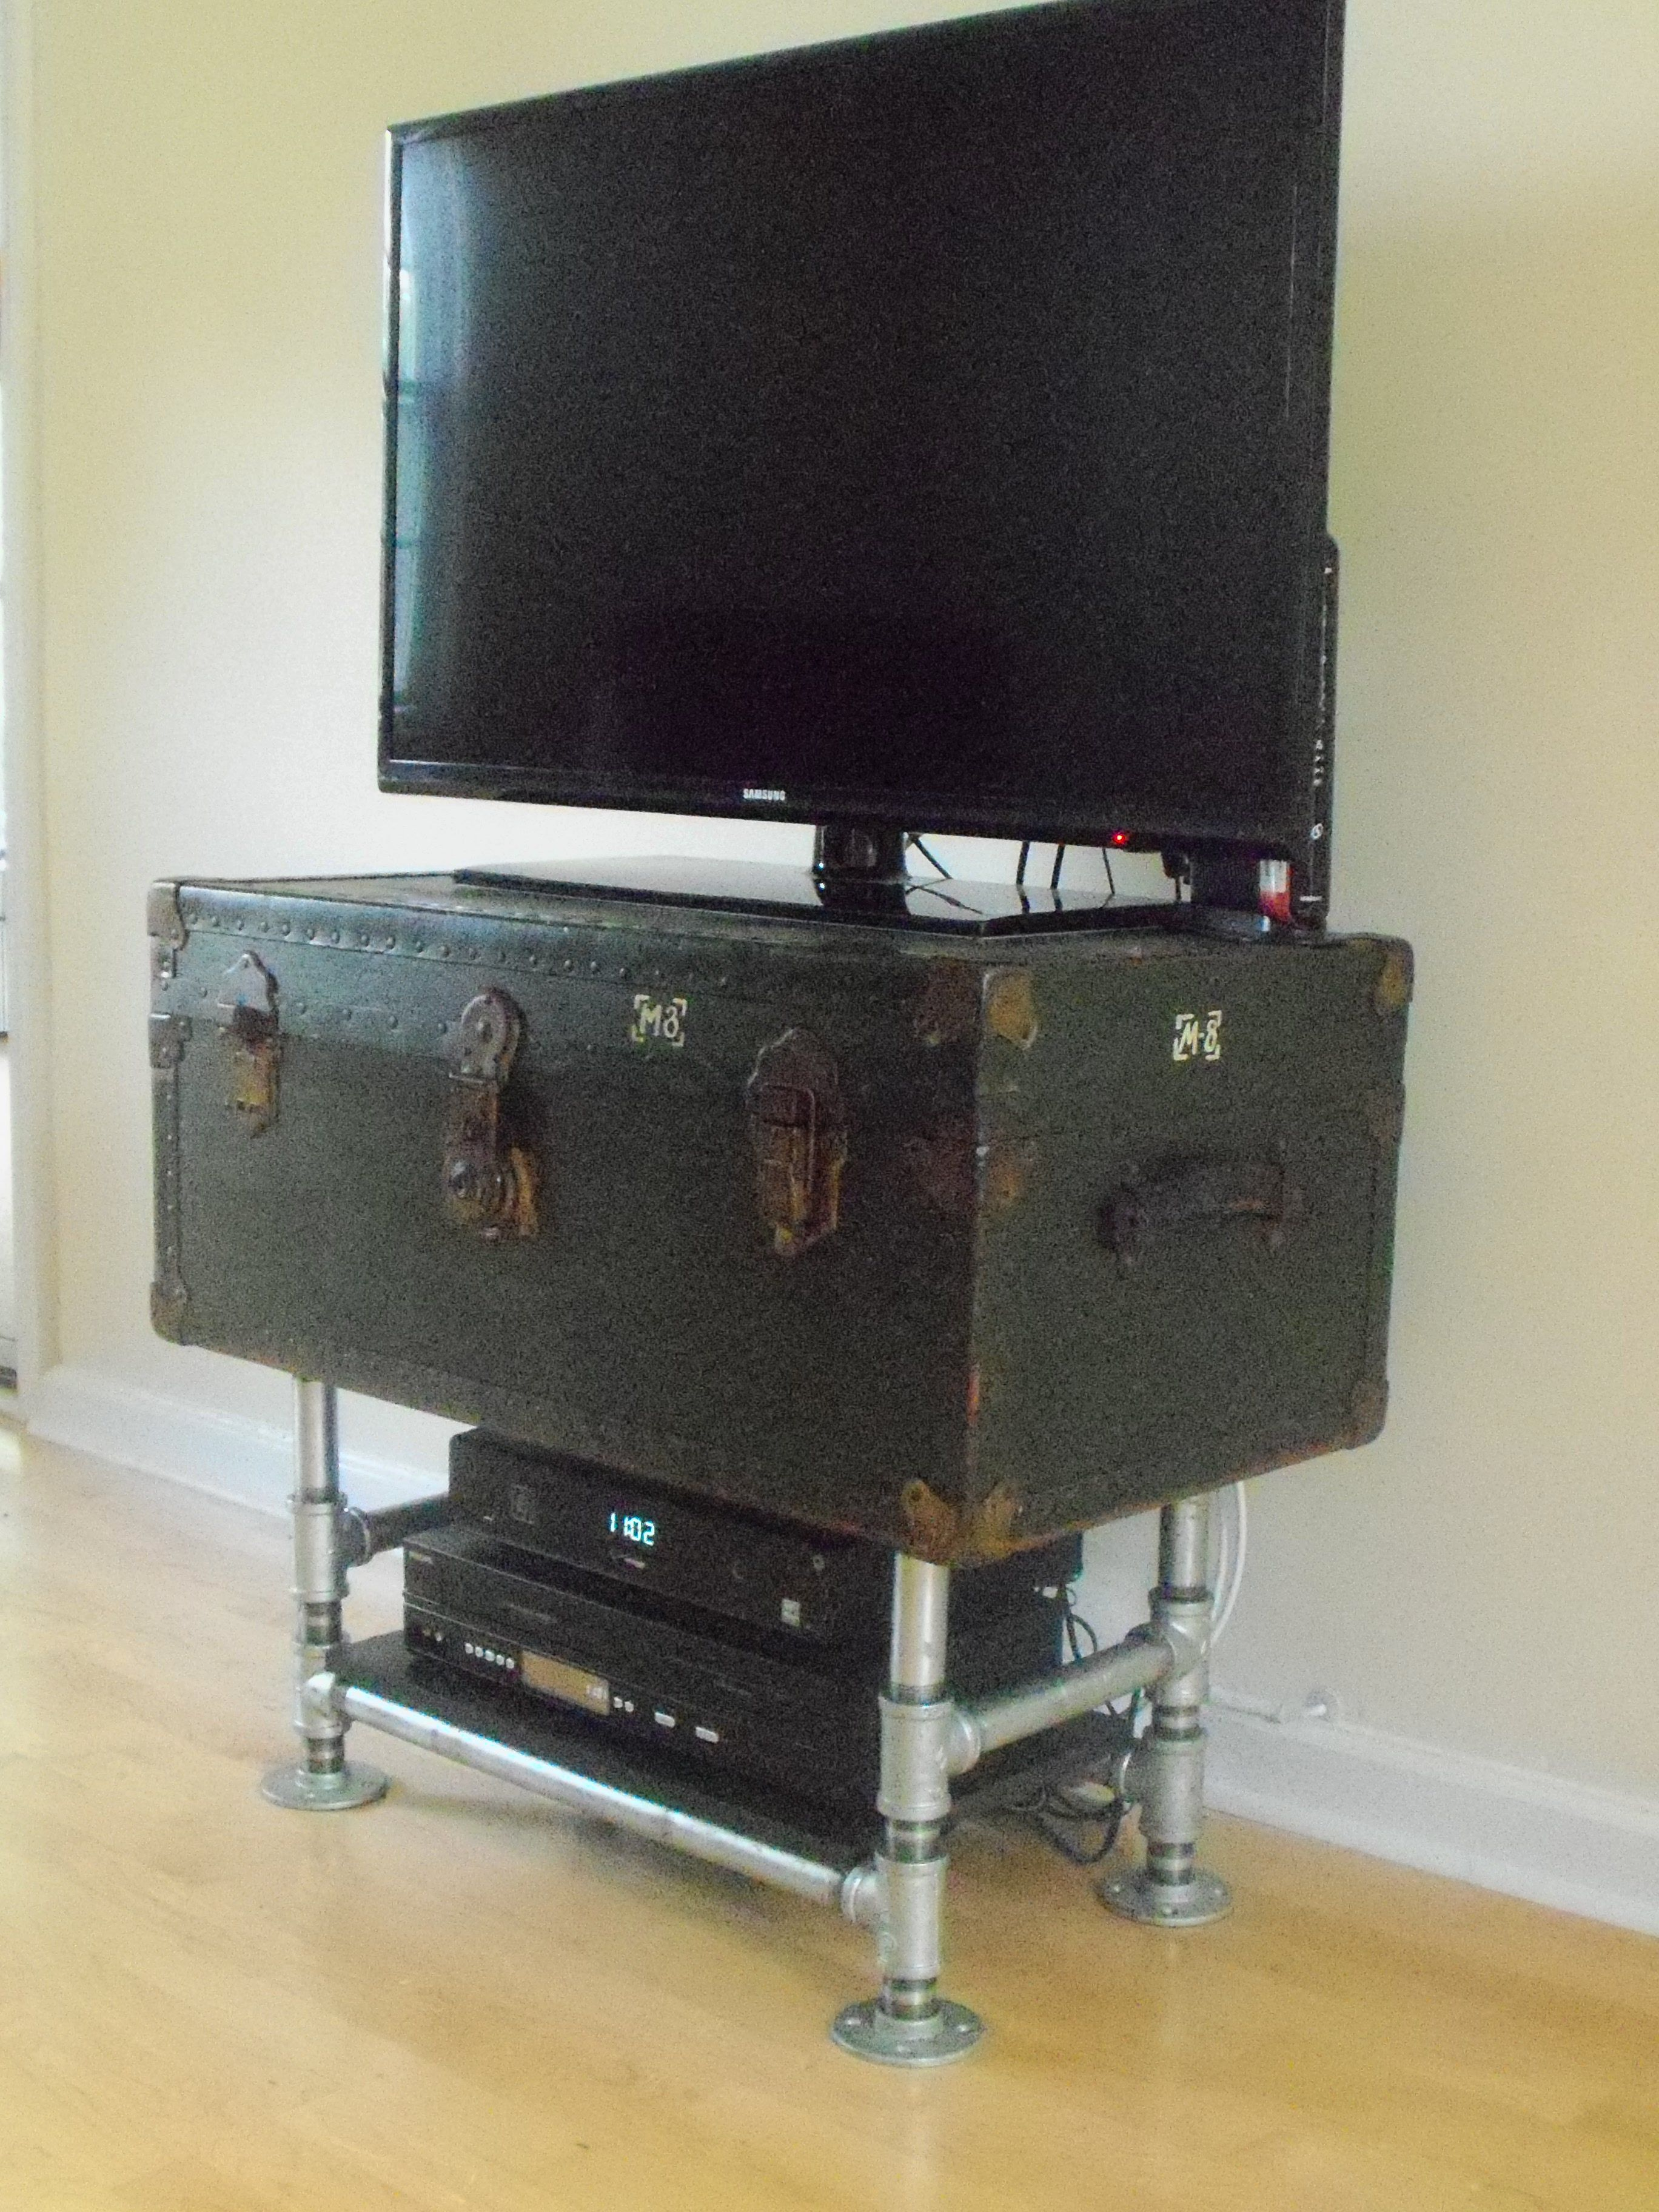 Pin On Diy Media Stand From Vintage Army Footlocker With Galvanized Steel Pipe Legs